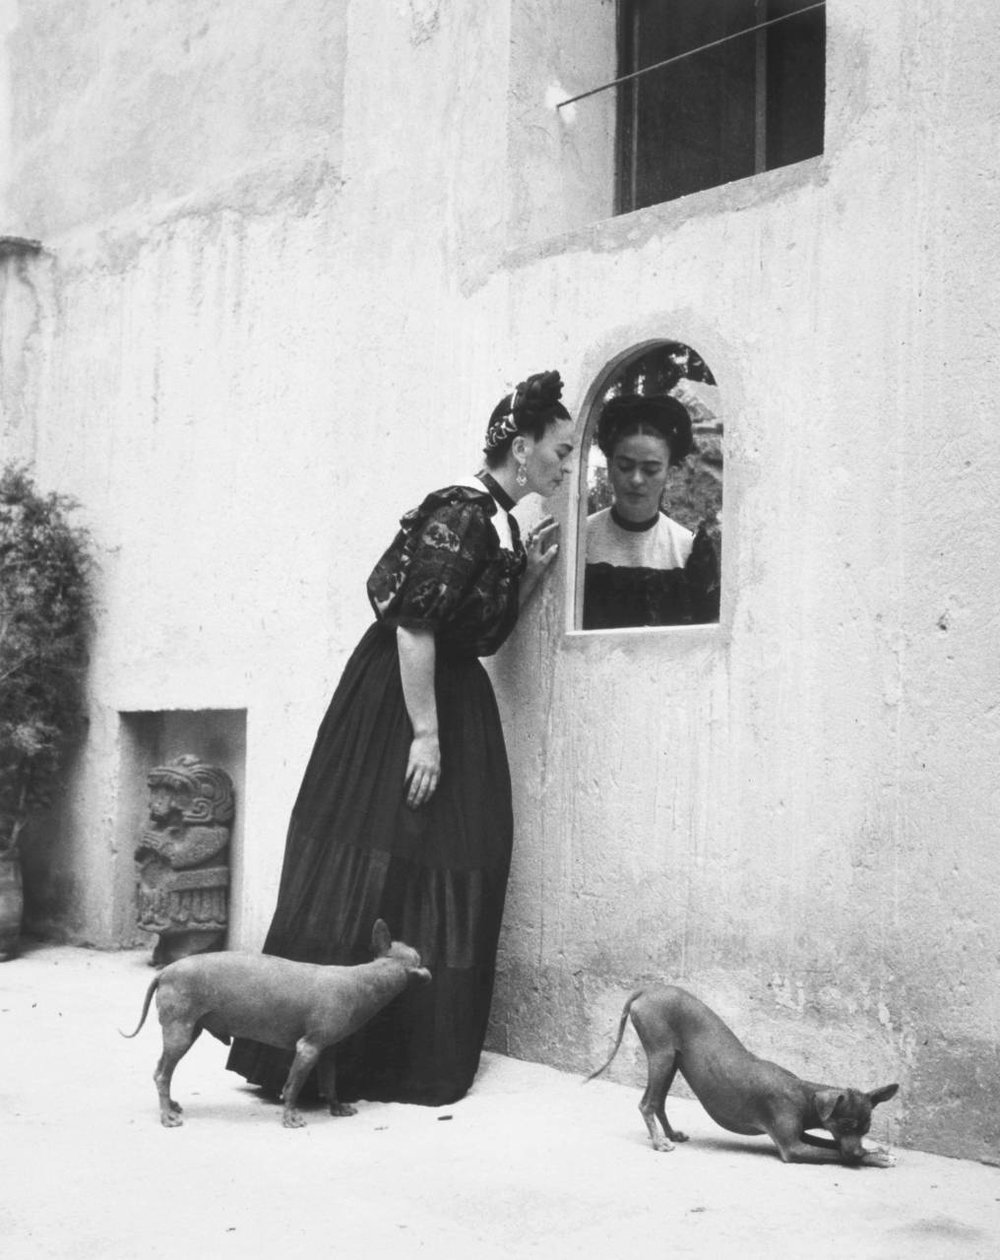 Let's take some time to reflect upon what an amazing woman Frida Kahlo was. Photo by Lola Álvarez Bravo